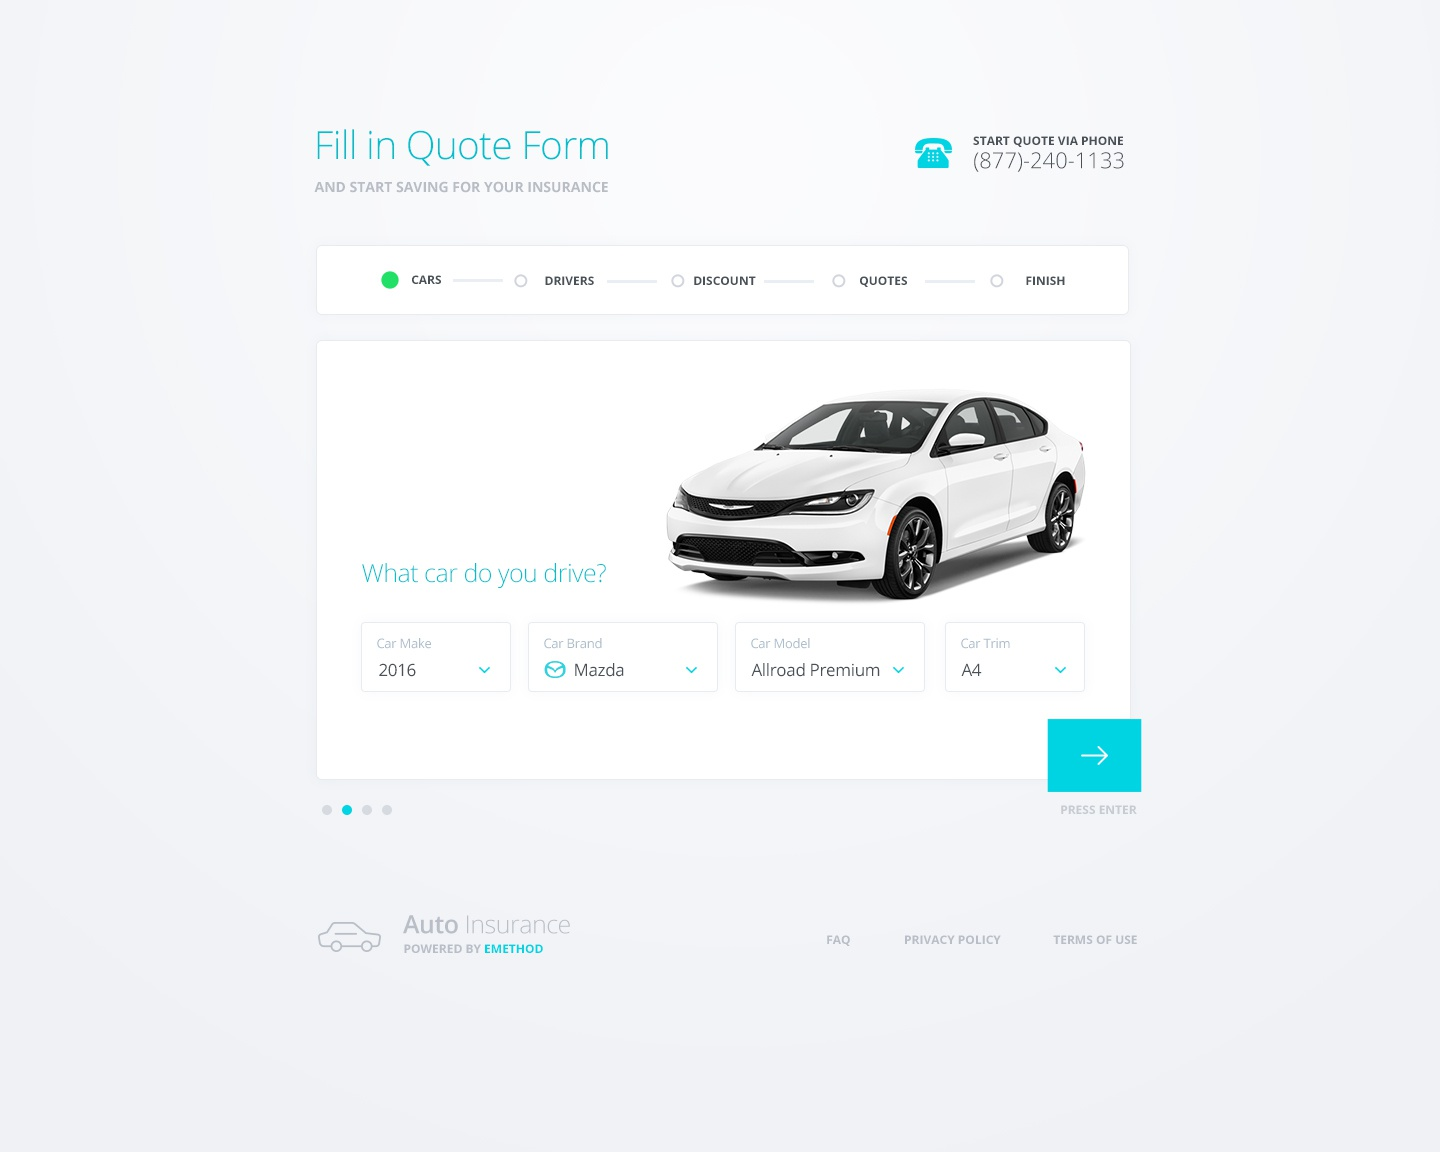 Auto Insurance Quote Engine by Faiz Al-Qurni on Dribbble